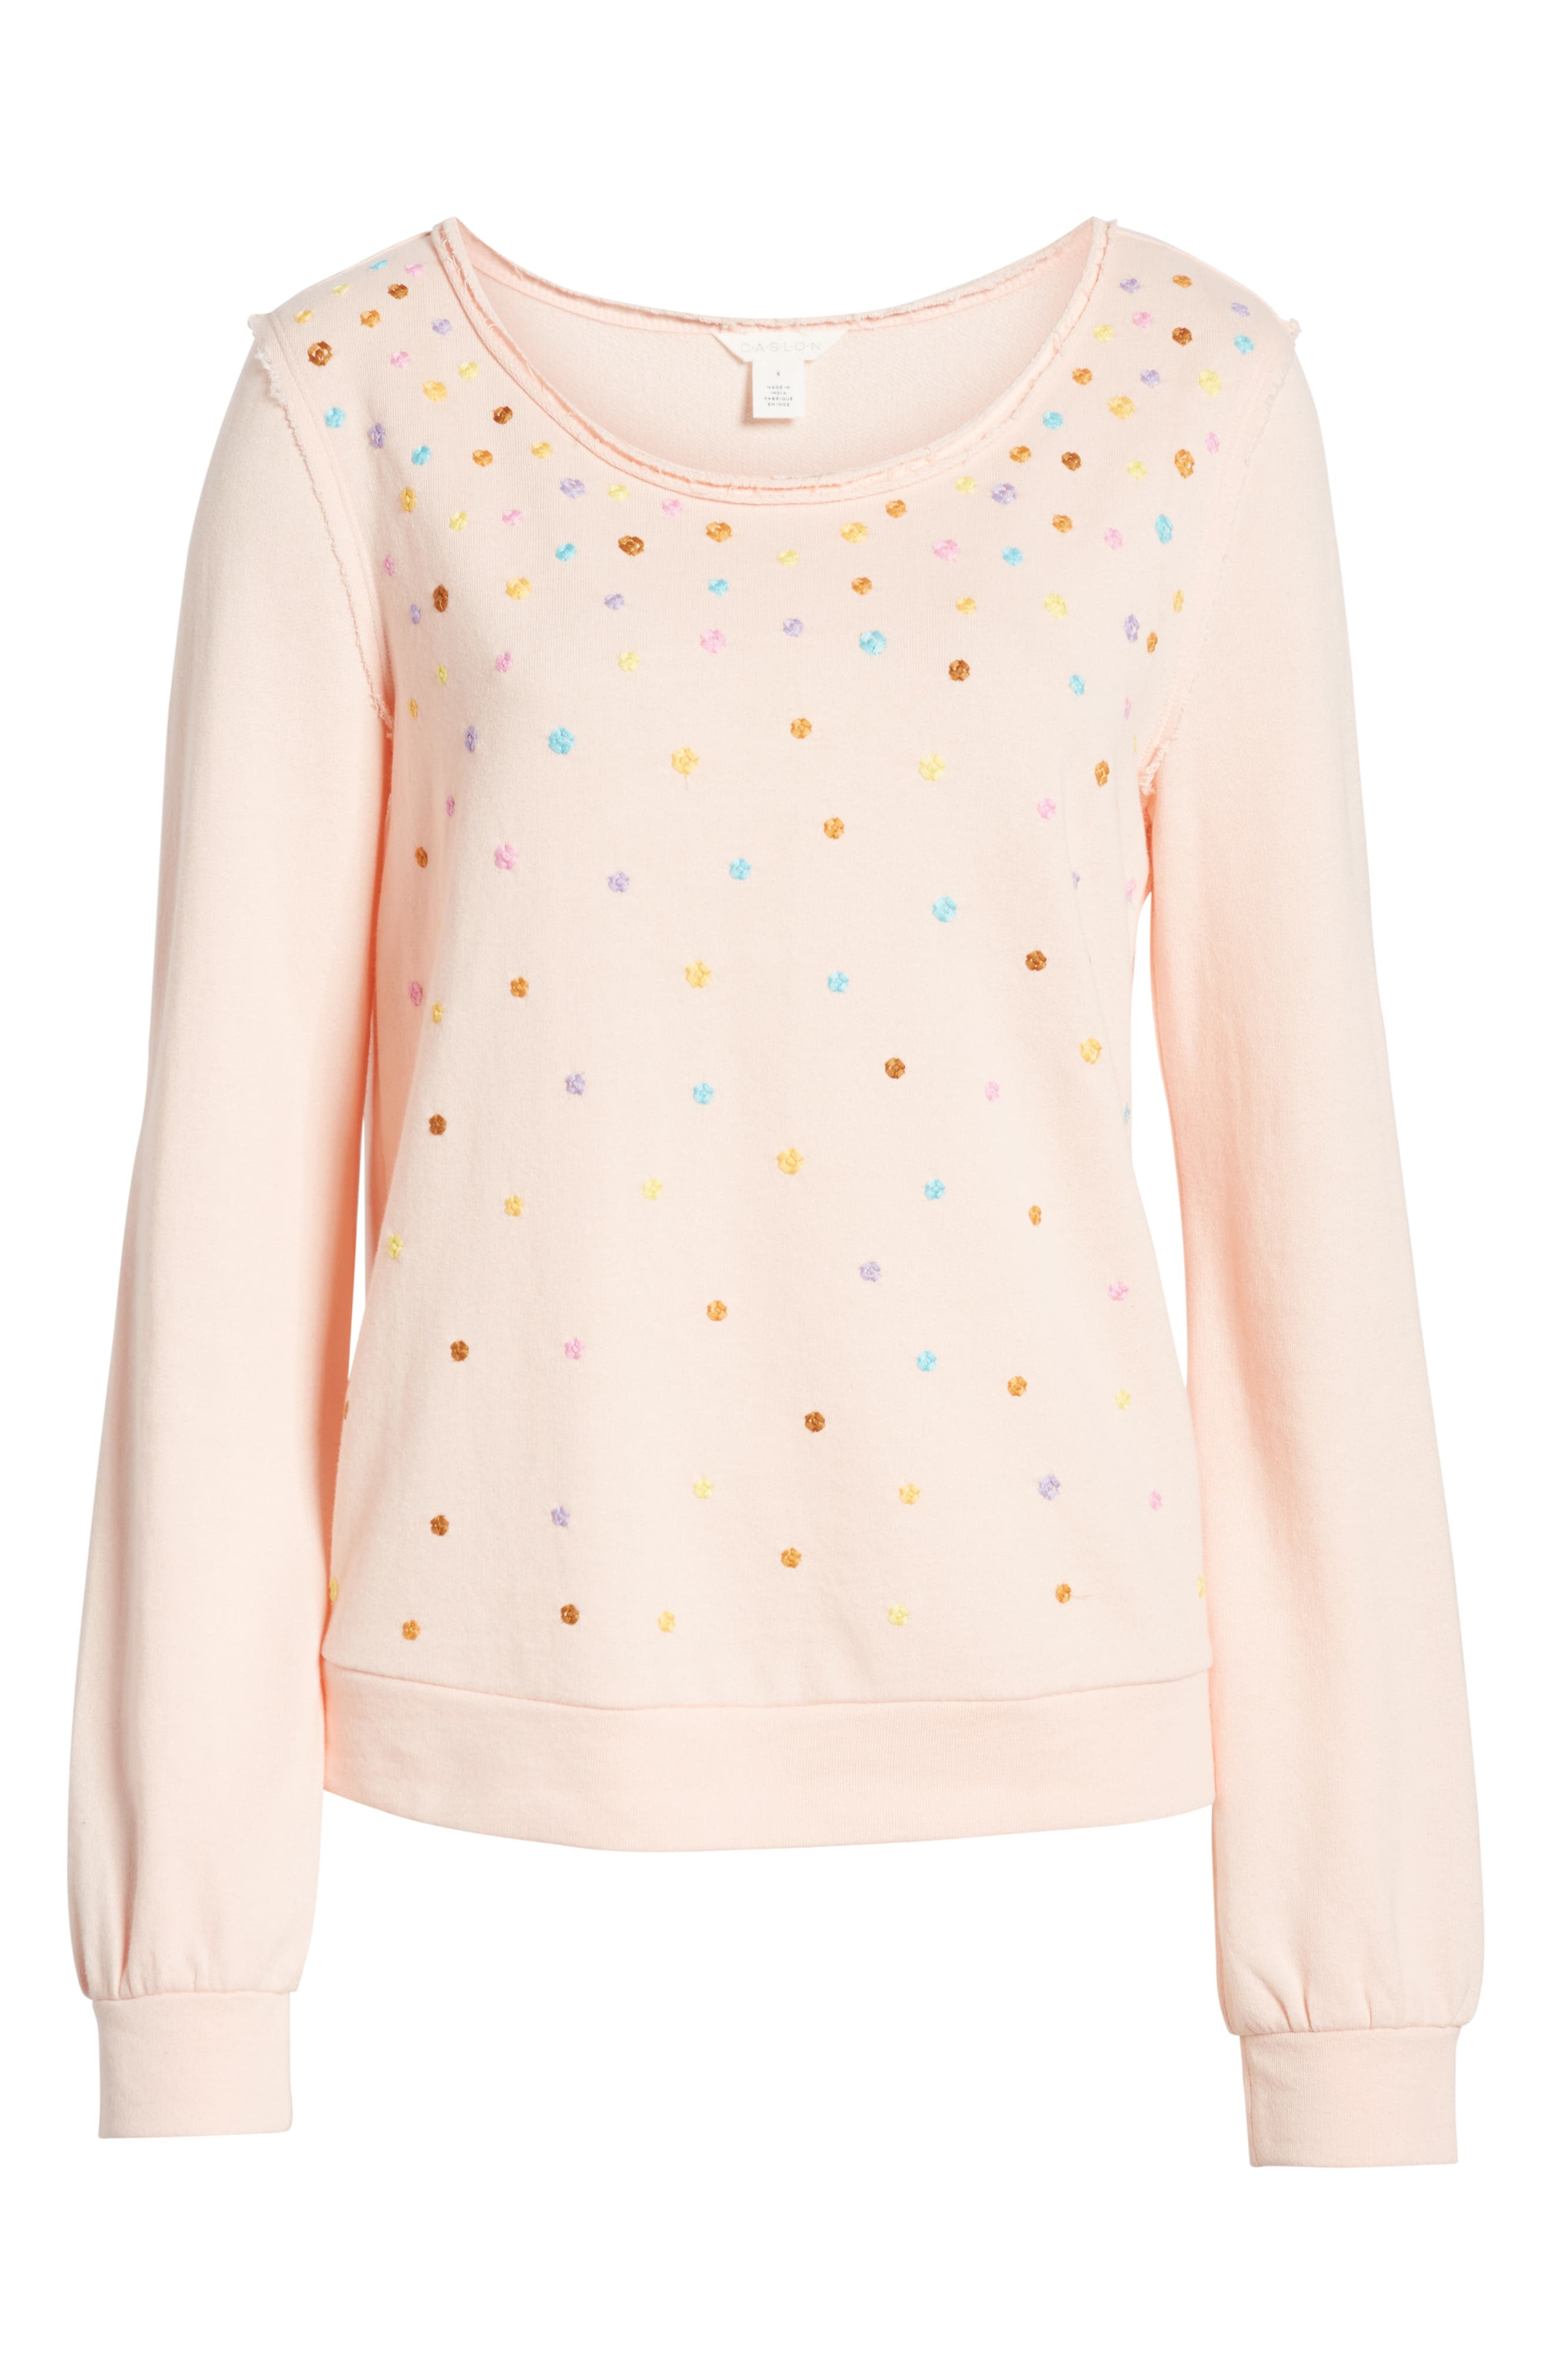 CASLON<SUP>®</SUP>, Embroidered Sweatshirt, Alternate thumbnail 6, color, PINK C EMBROIDERED